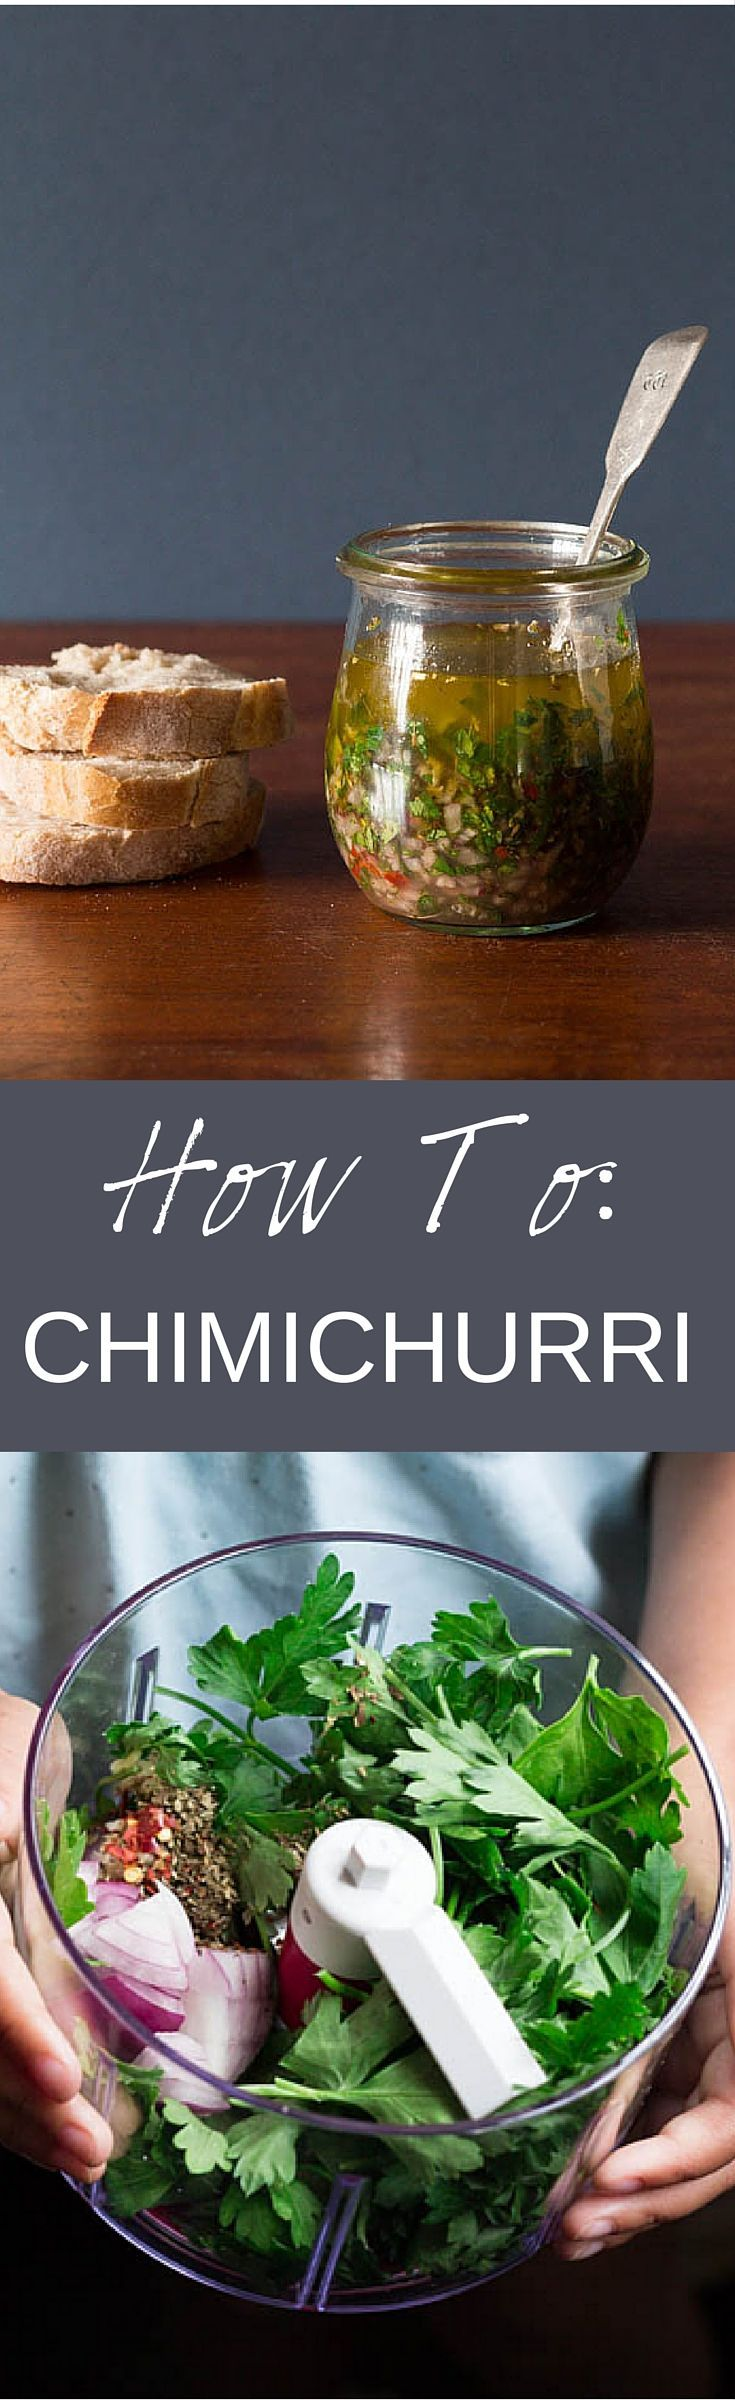 Chimichurri Recipe - Recipes From A Pantry. A quick guide on how to make chimichurri sauce which is perfect for grilled meat, fish and crusty bread. recipesfromapantry.com #Chimichurri